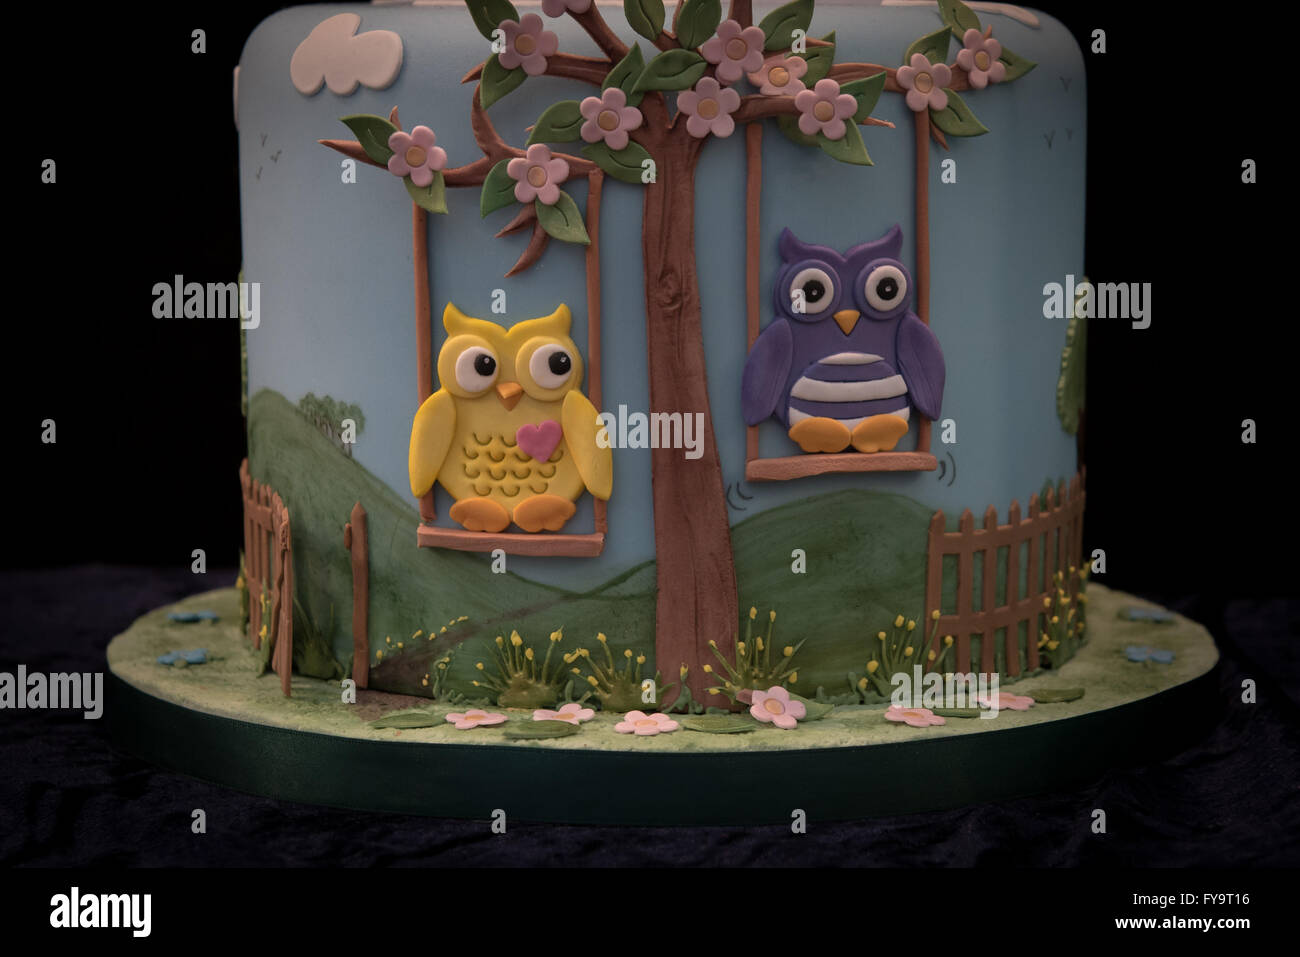 Owls On Swing Decorative Birthday Cake At International The Sugarcraft Decorating And Baking Show In London